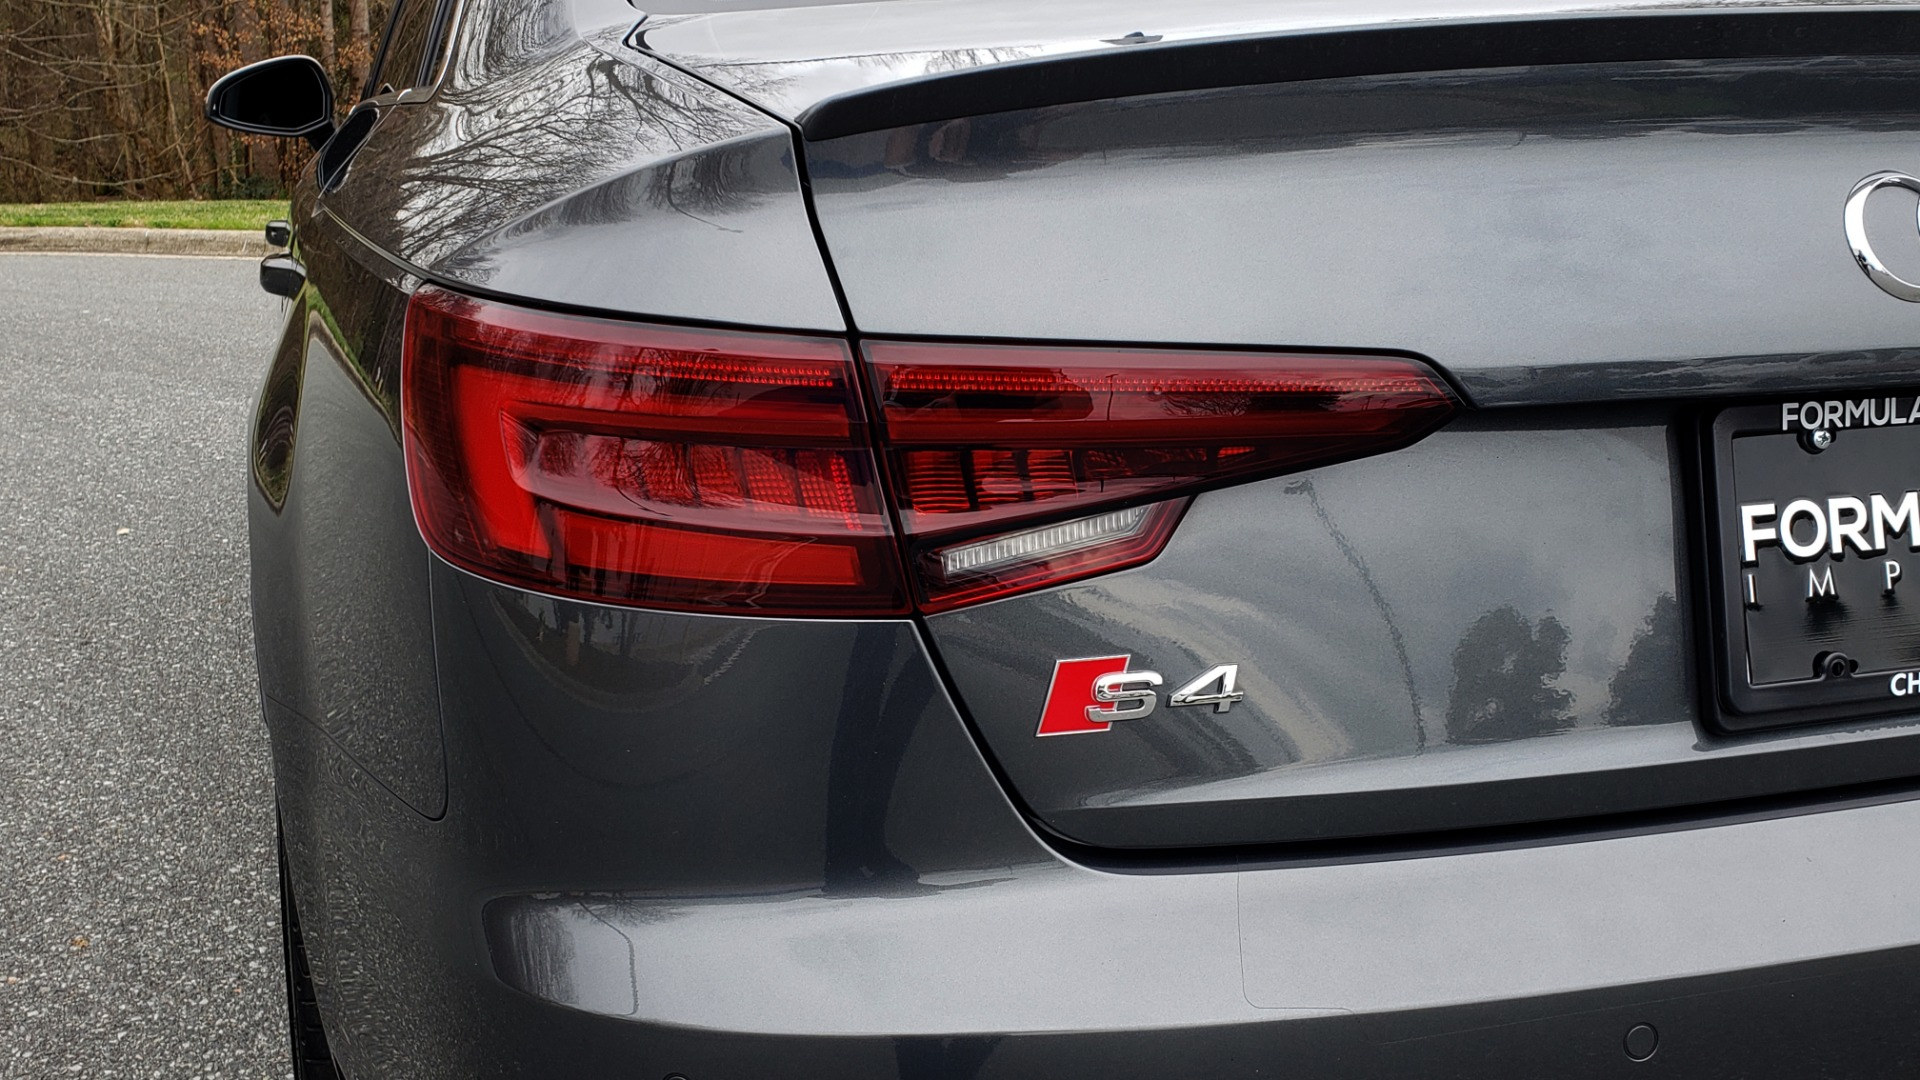 Used 2019 Audi S4 PREMIUM PLUS / AWD / NAV / SUNROOF / B&O SOUND / REARVIEW for sale Sold at Formula Imports in Charlotte NC 28227 28